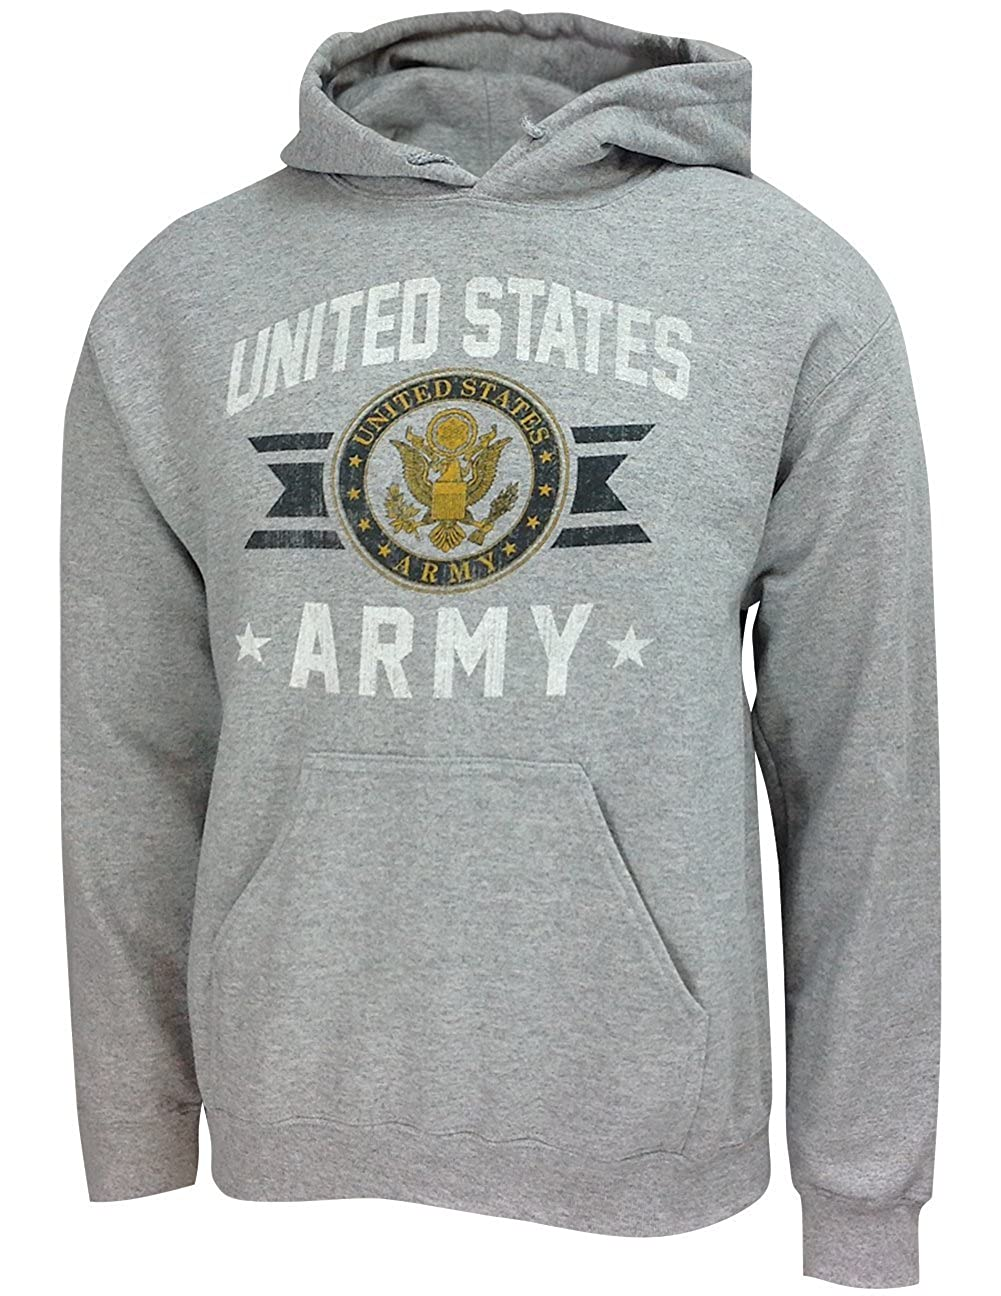 United States Army Military Long Sleeve Hoodie with Branch Logo